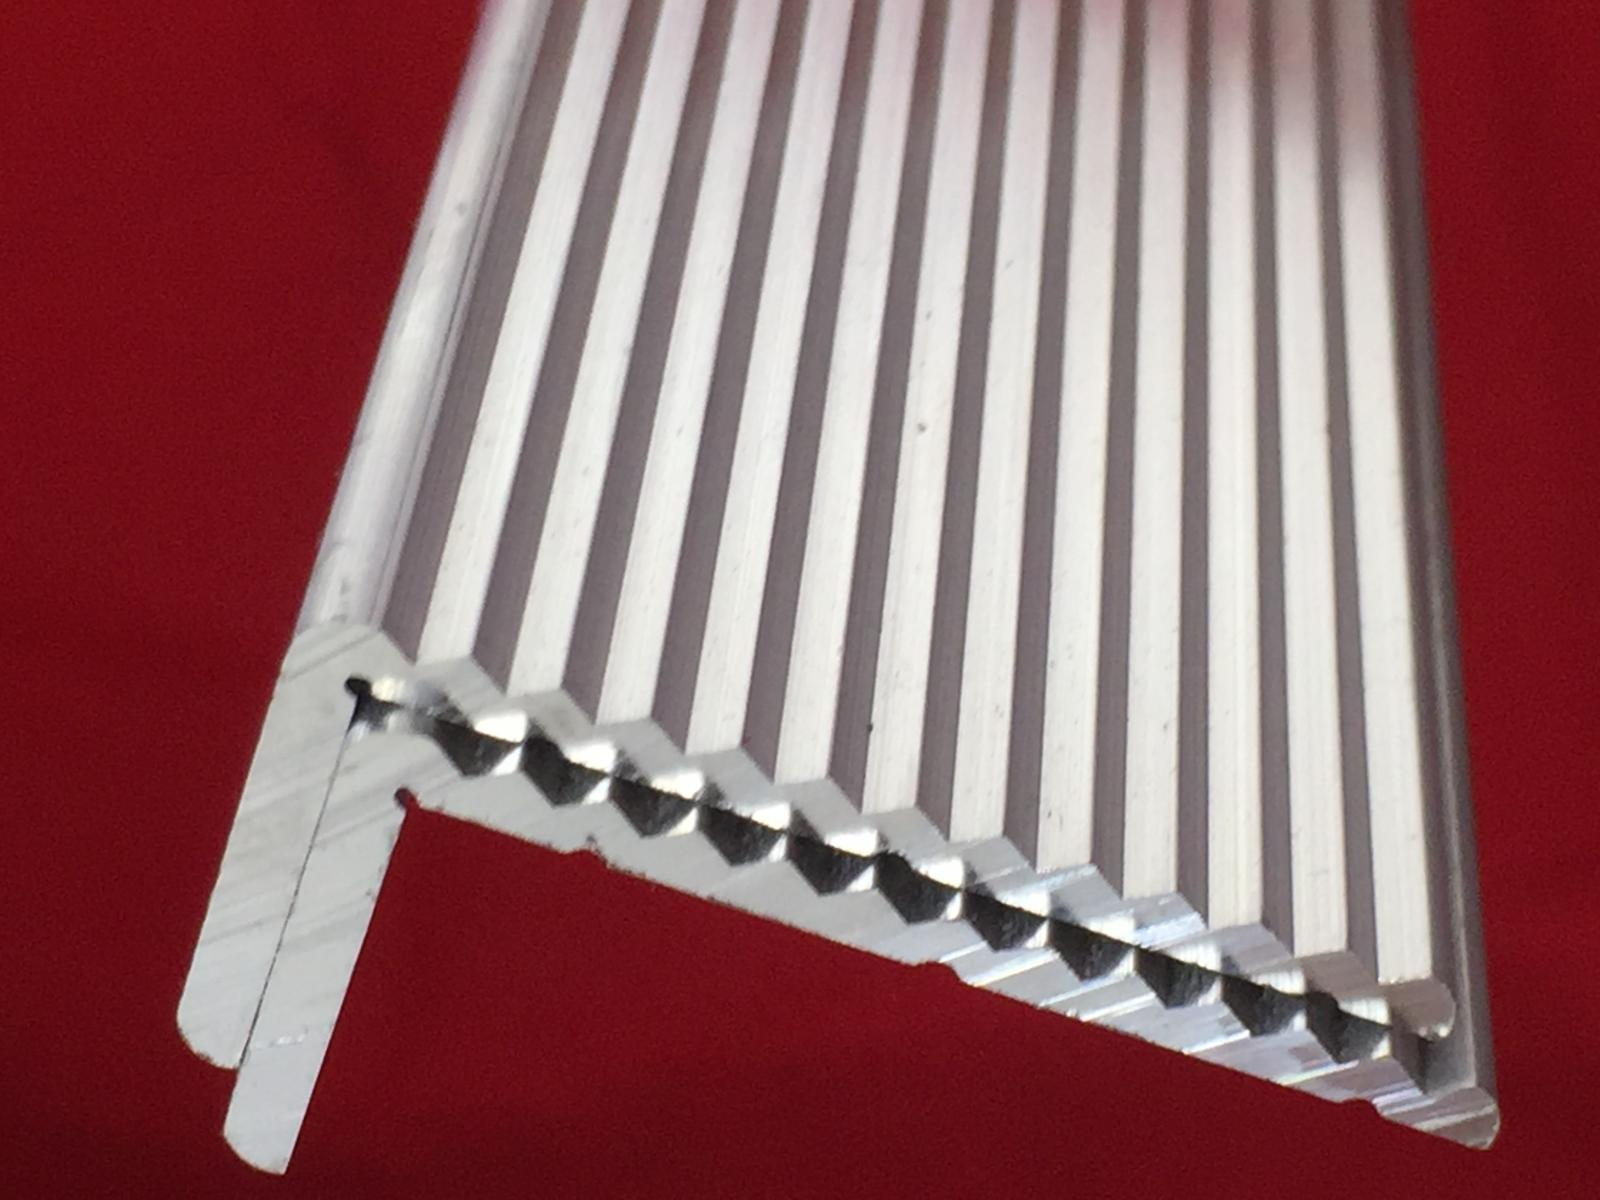 Aluminium angle fluted multi fluted anti slip trim stair for A decoration none